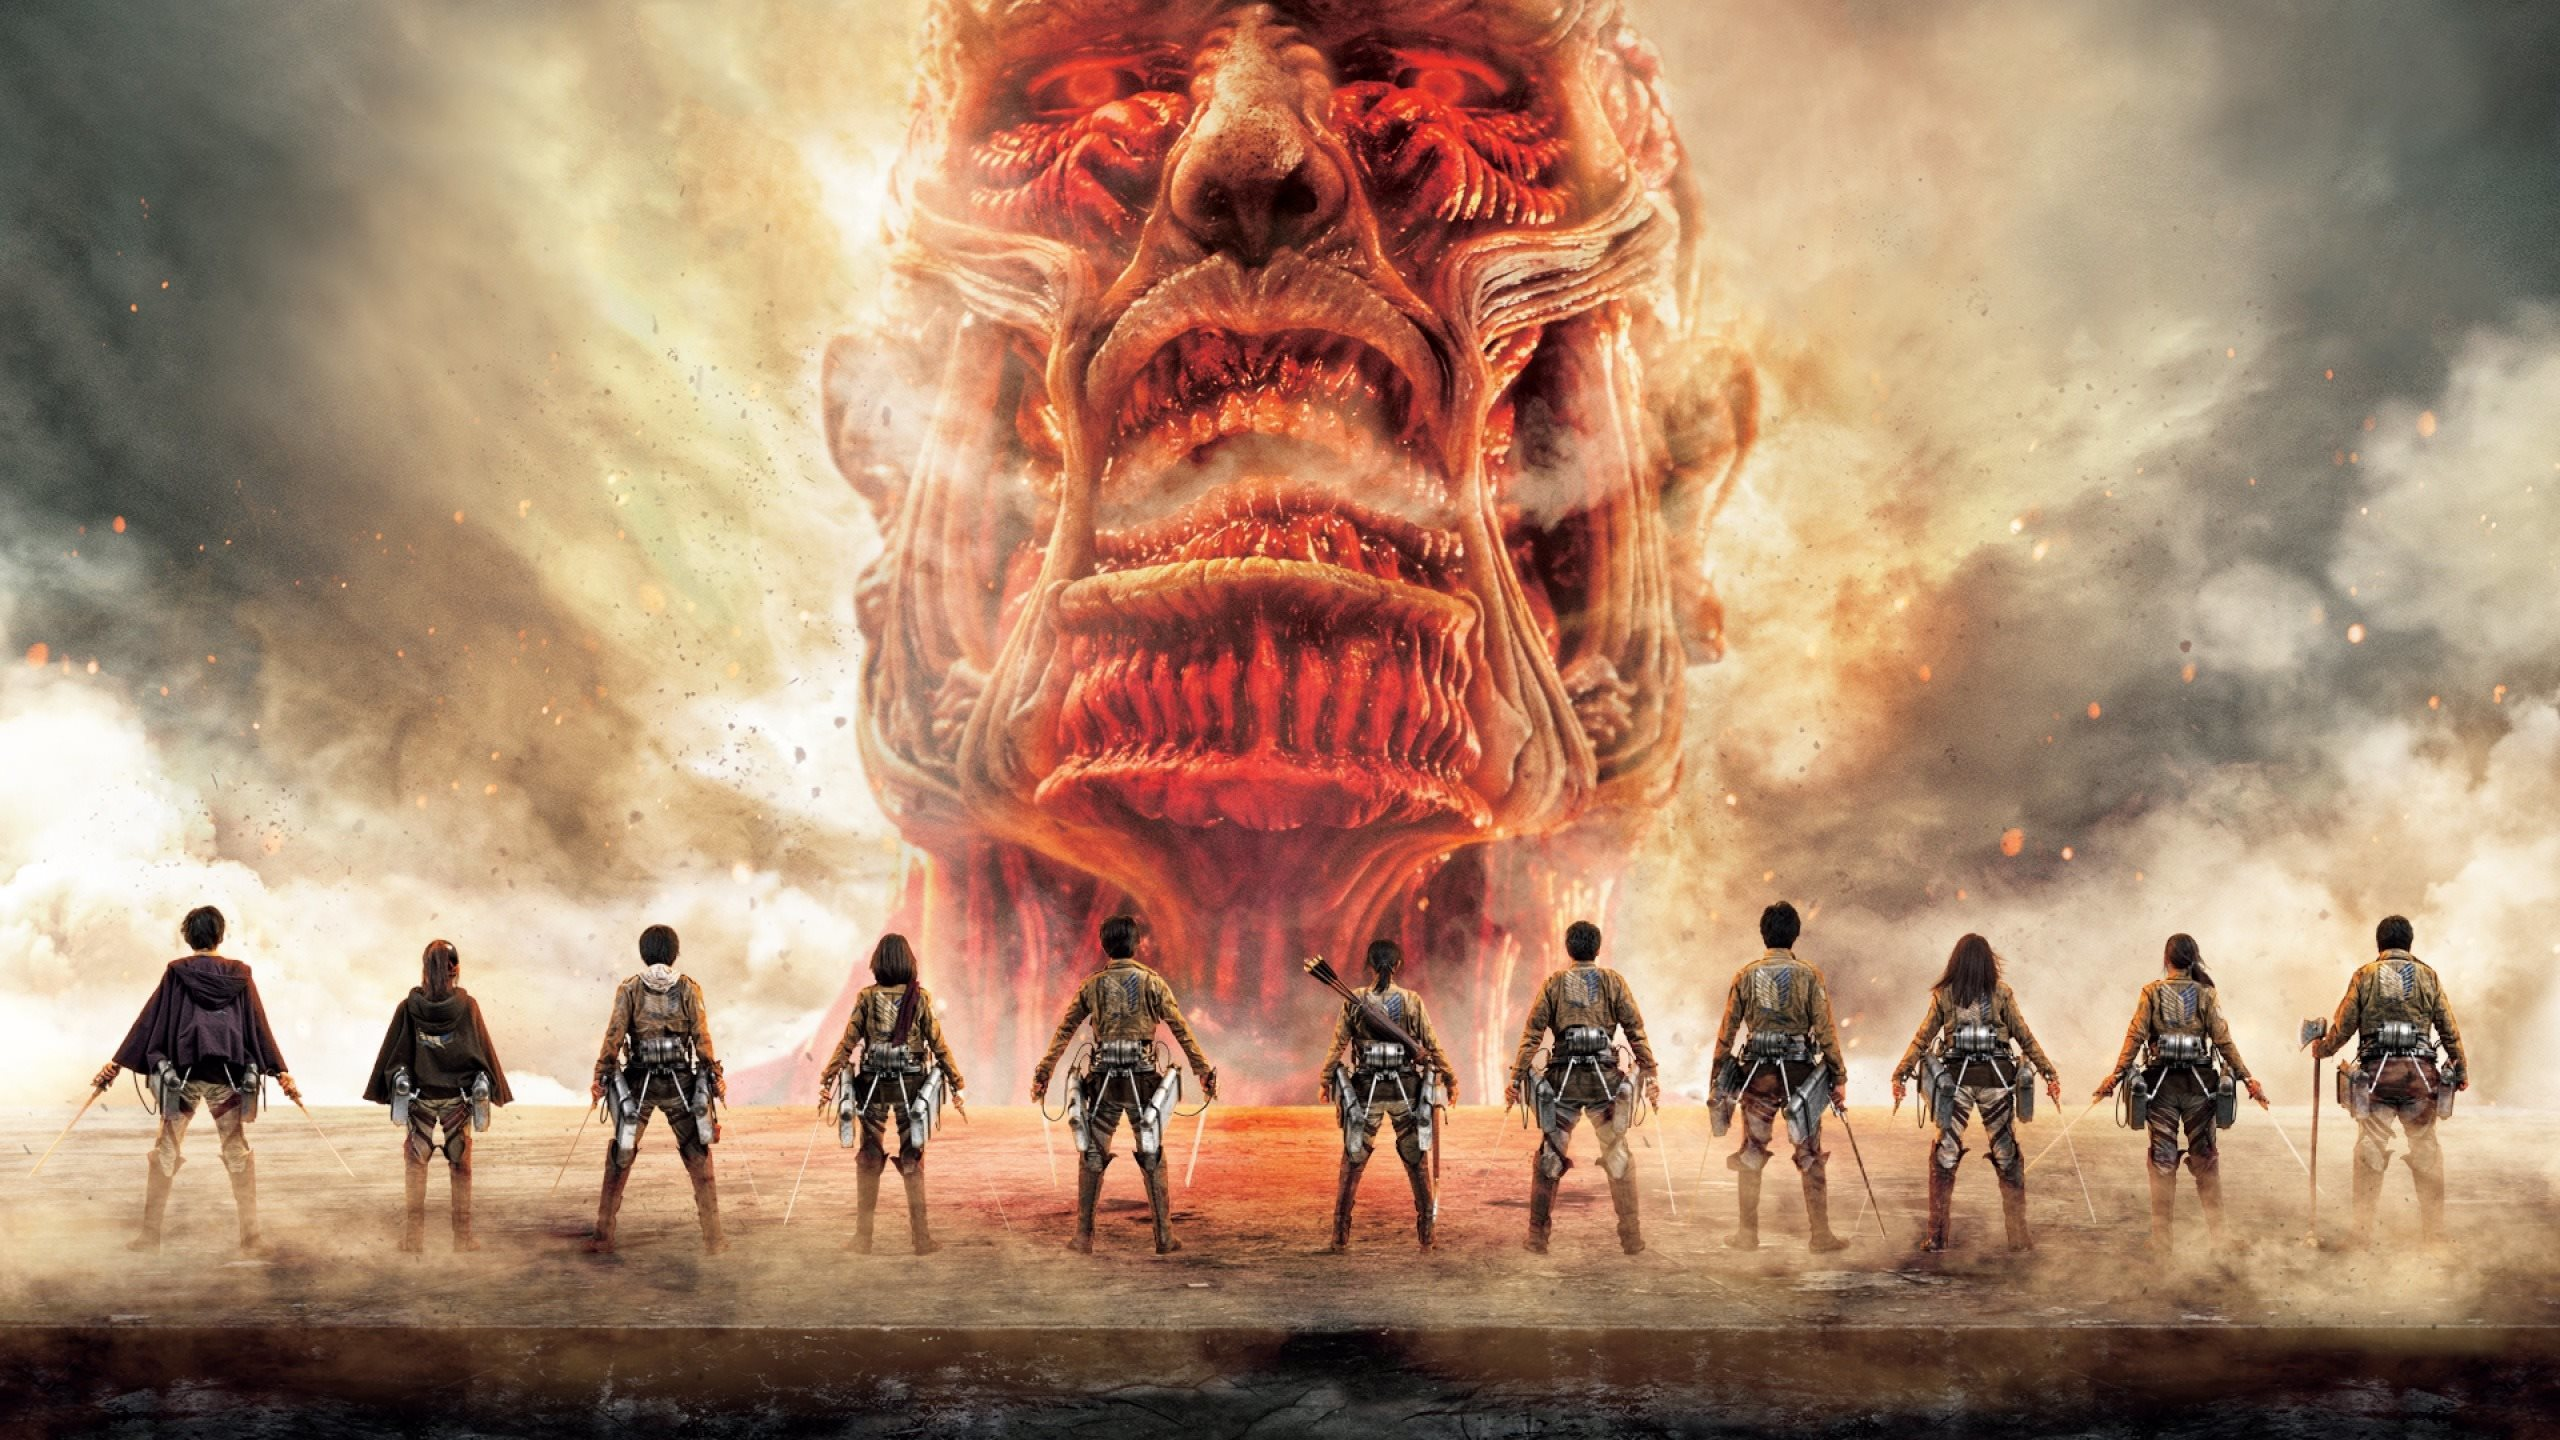 2560x1440 Attack On Titan Japanese Tv Series Poster 1440p